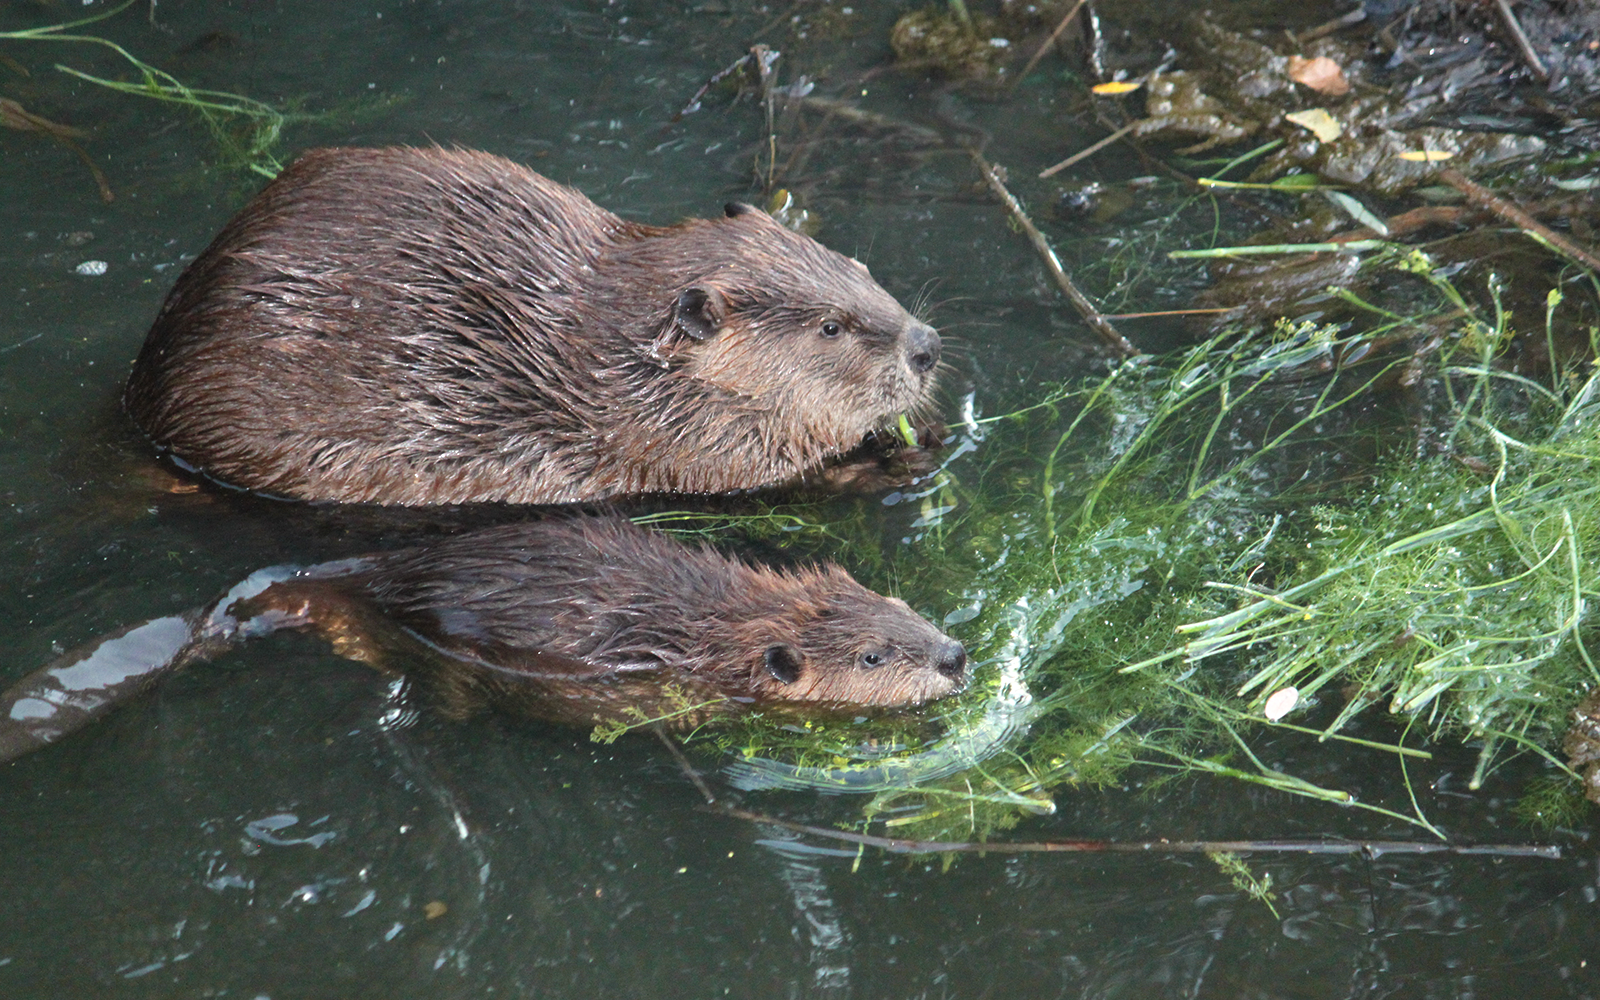 Oregon Fish and Wildlife Commission Petitioned to End Beaver Trapping and Hunting on Federal Land